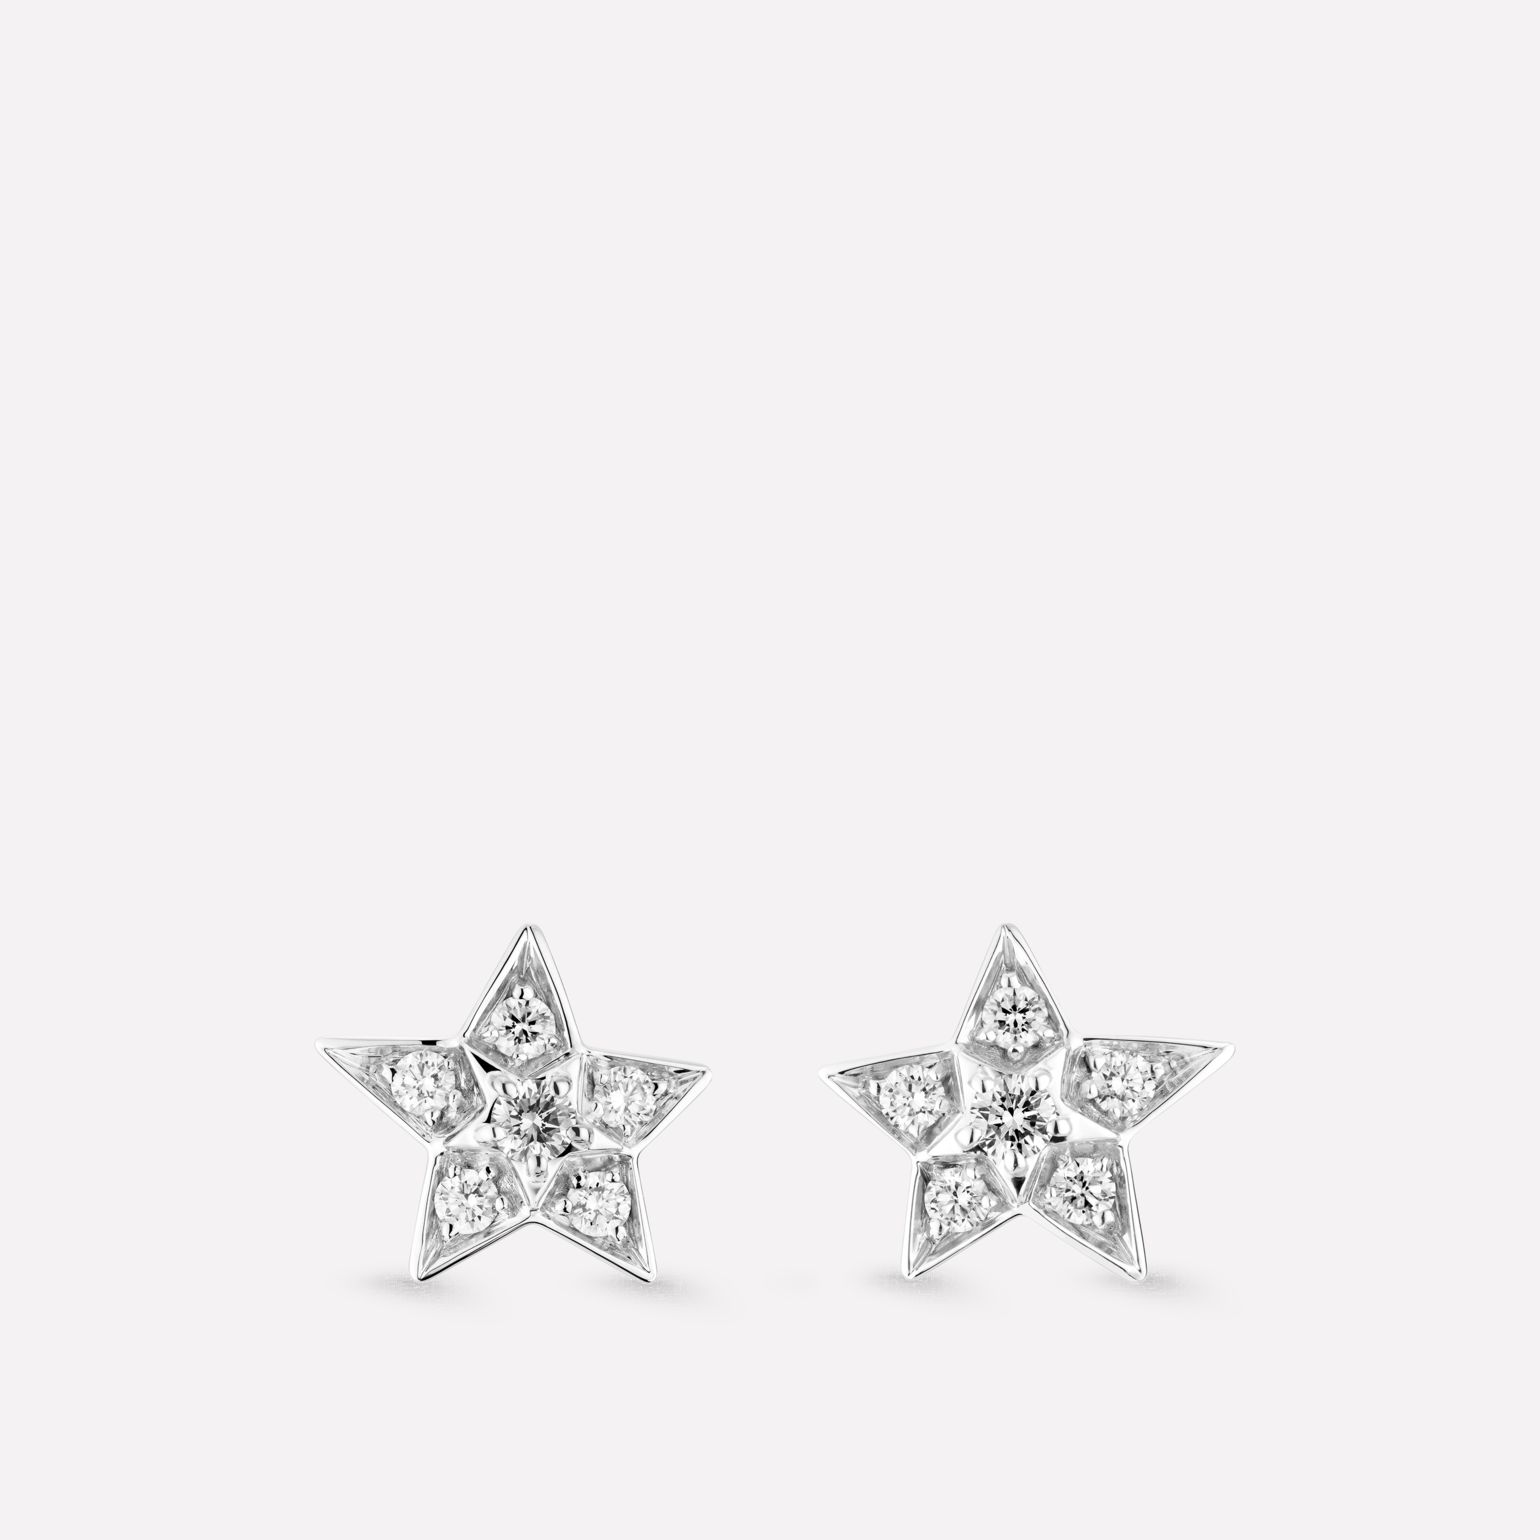 Comète earrings Star earrings, small version, in 18K white gold and diamonds